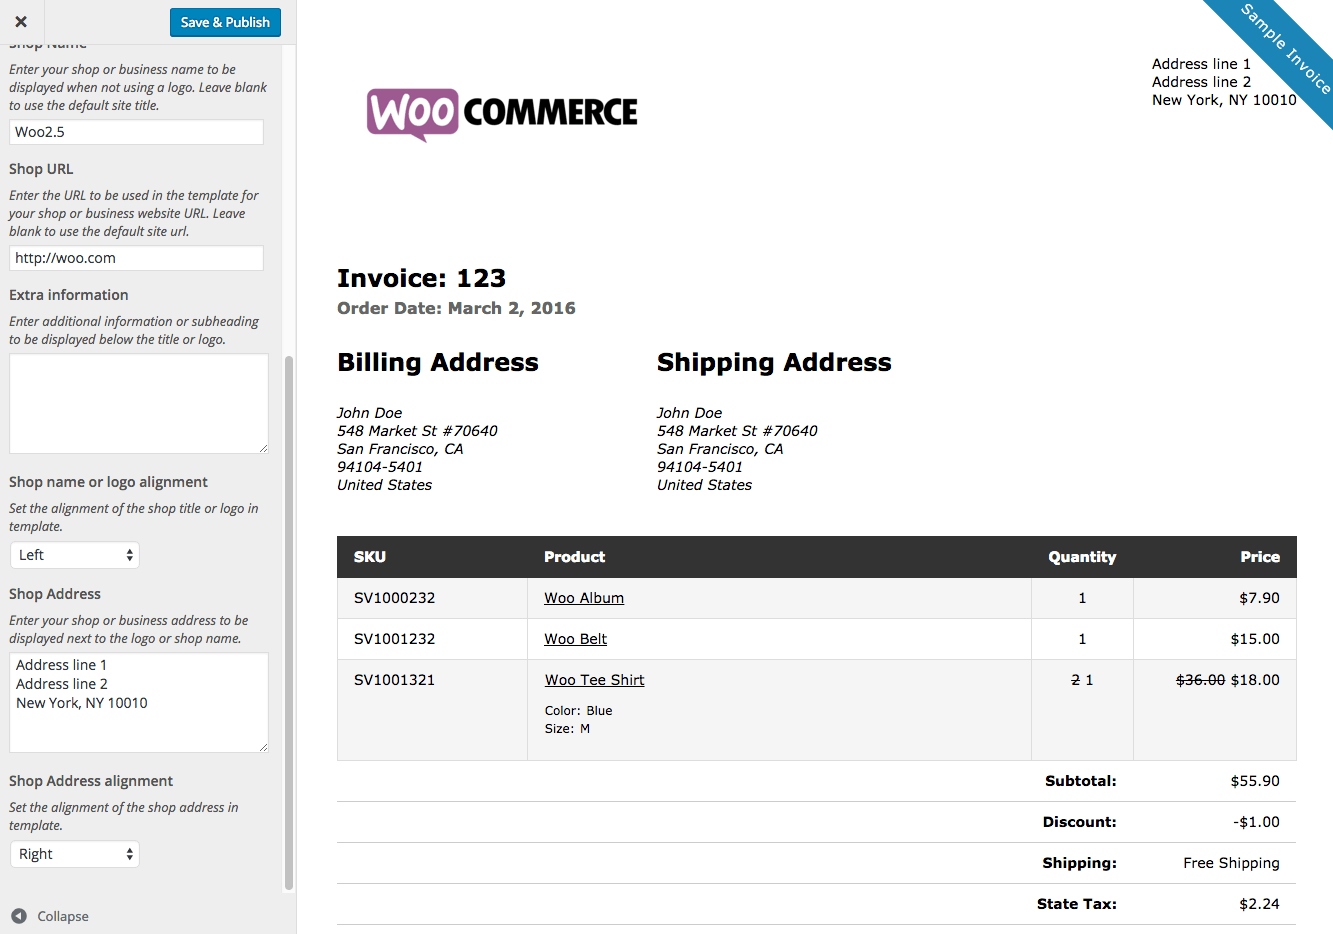 Totallocalus  Stunning Woocommerce Print Invoices Amp Packing Lists  Woocommerce Docs With Extraordinary Woocommerce Print Invoices  Packing Lists Customizer With Comely Printable Blank Receipt Also Scanning Receipts Into Quickbooks In Addition Medical Receipts And Personal Property Tax Receipt St Louis County As Well As Email Read Receipts Additionally Florida Business Tax Receipt From Docswoocommercecom With Totallocalus  Extraordinary Woocommerce Print Invoices Amp Packing Lists  Woocommerce Docs With Comely Woocommerce Print Invoices  Packing Lists Customizer And Stunning Printable Blank Receipt Also Scanning Receipts Into Quickbooks In Addition Medical Receipts From Docswoocommercecom